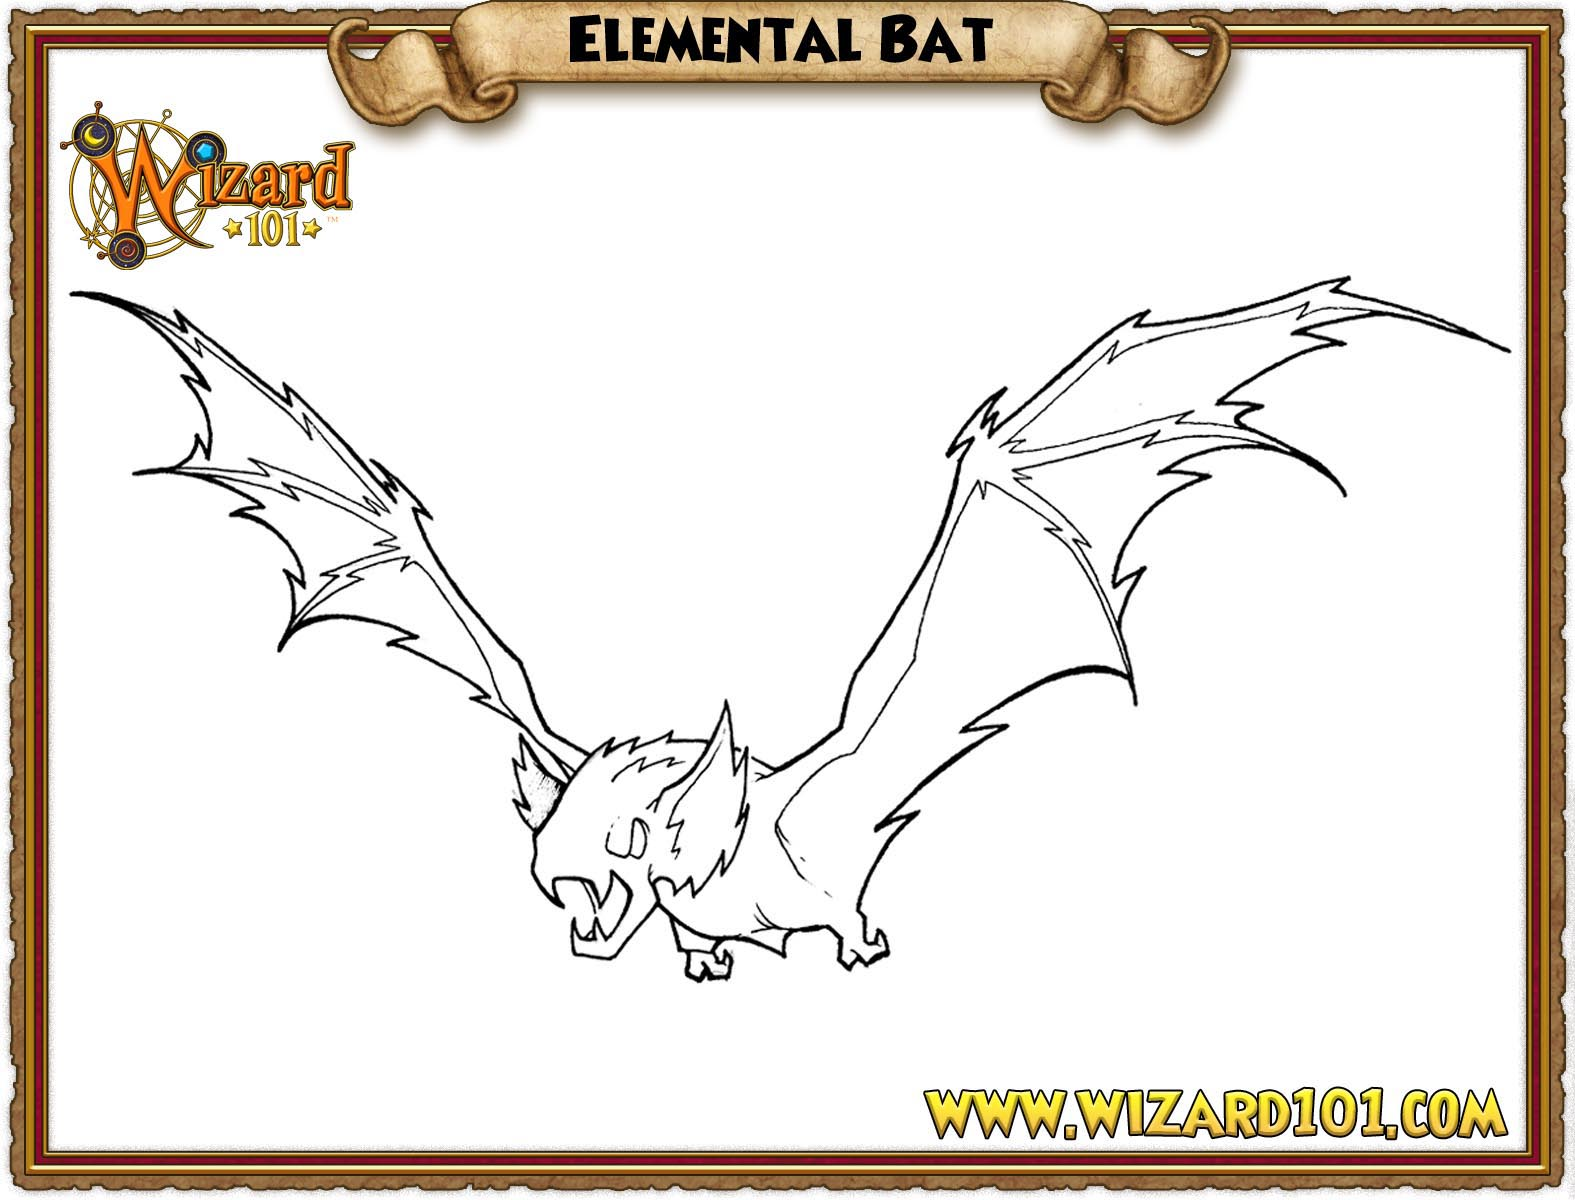 coloring pages wizard101 free online game rh wizard101 com Wizard Hat Coloring Pages Printable Wizard101 Pets Coloring Pages